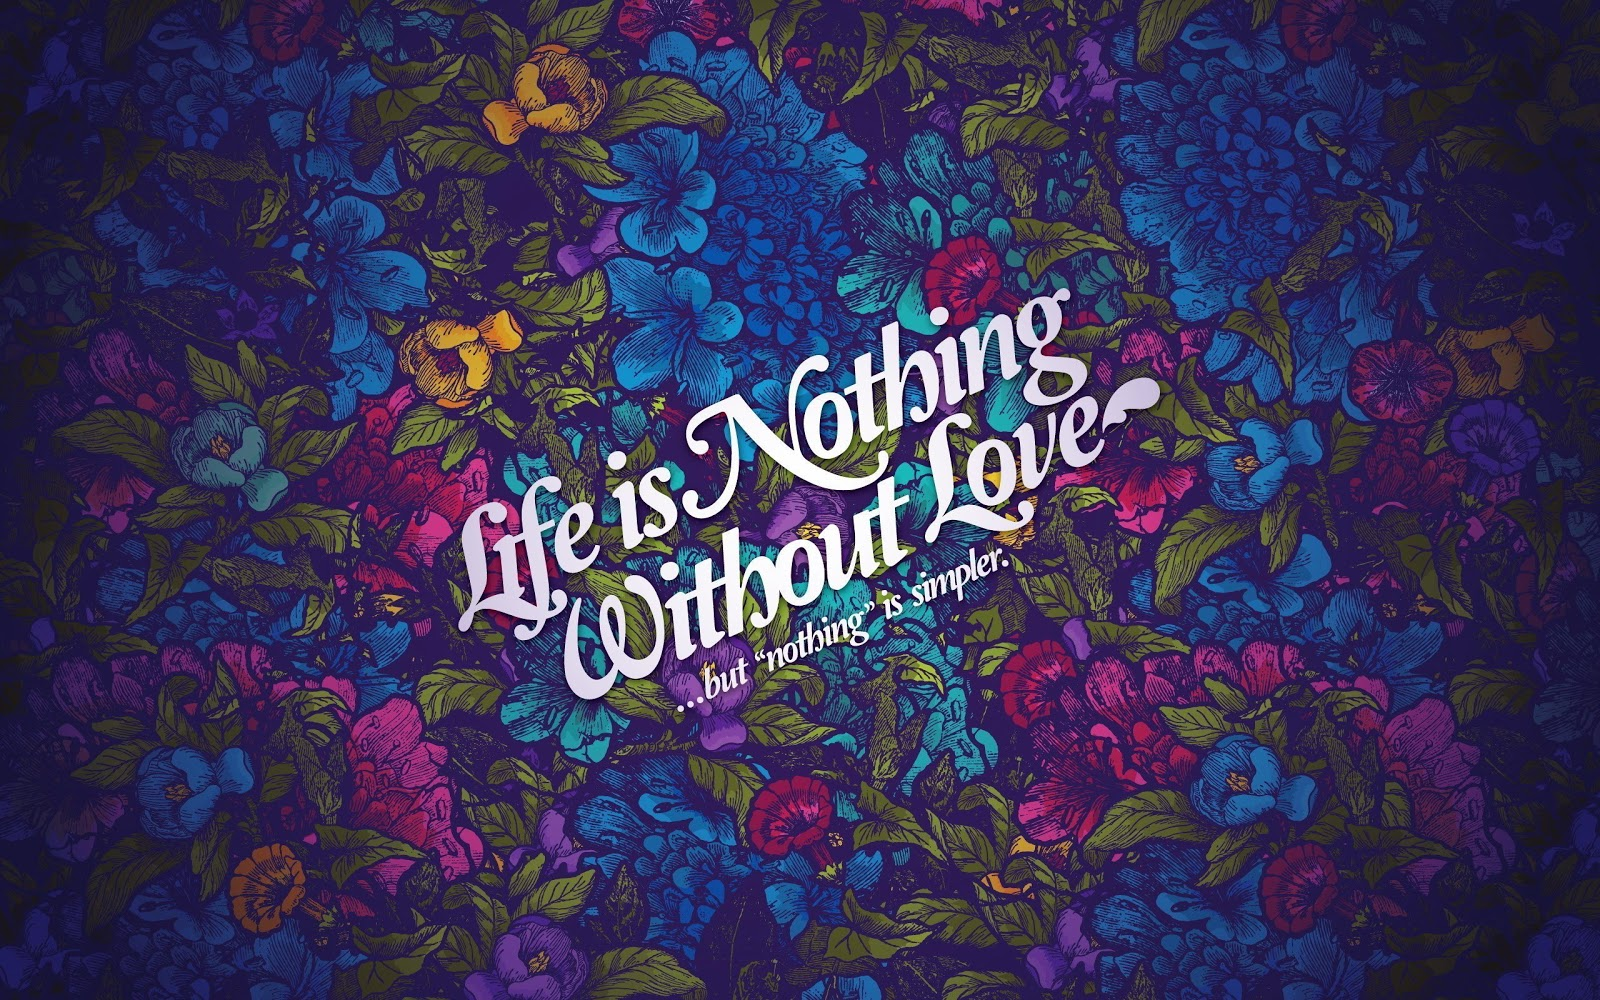 Love Wallpaper Hd : HD Wallpaper Download: Love HD Wallpapers - Life Nothing ...